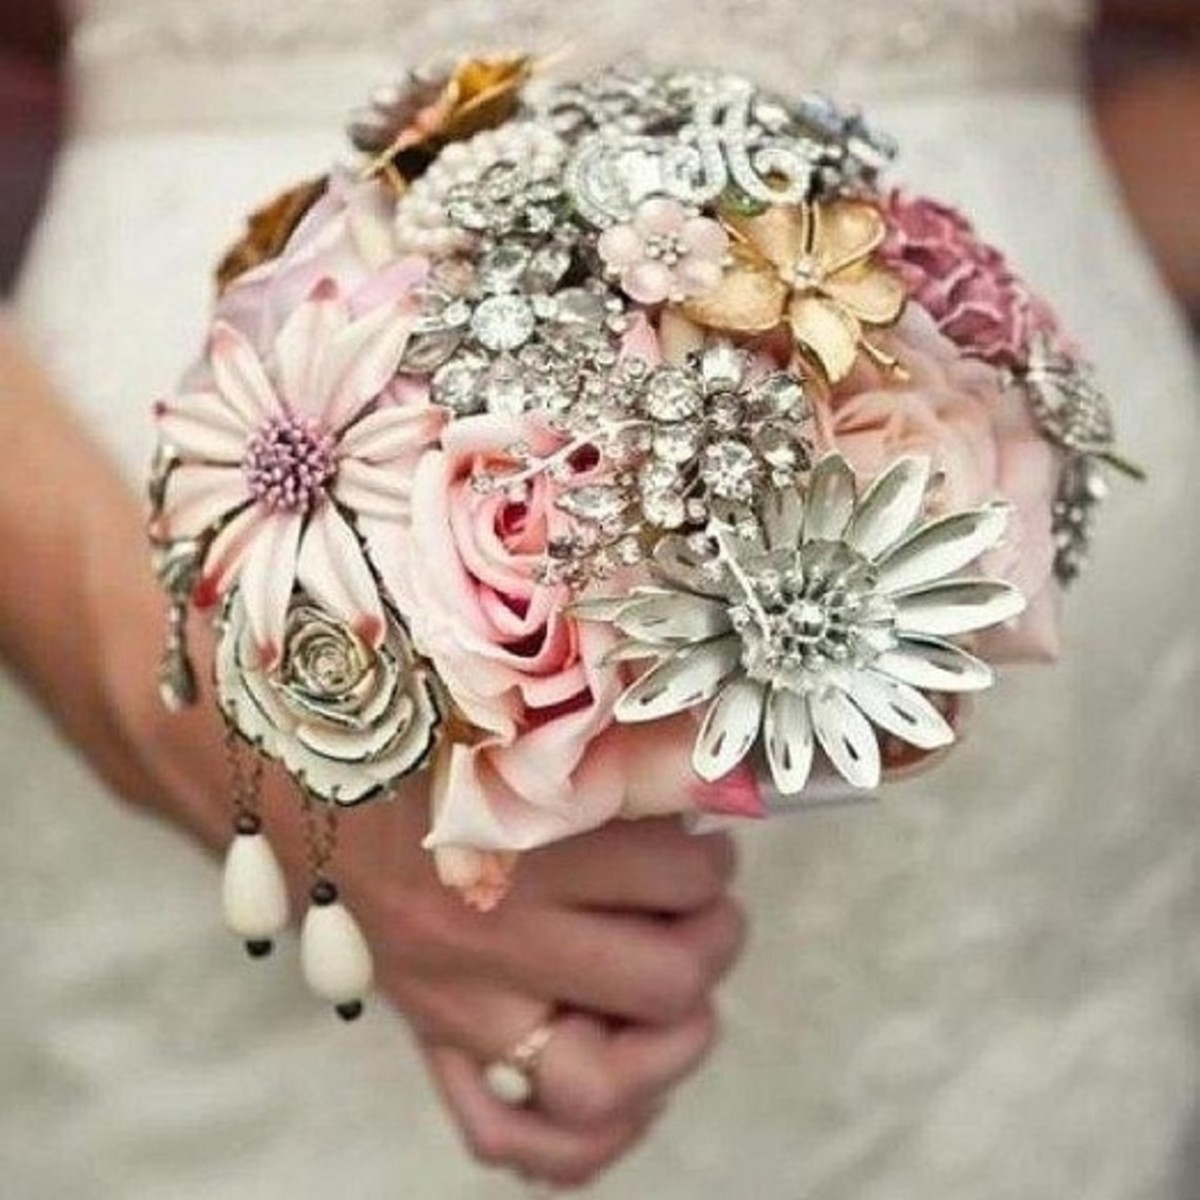 Vintage jewelry brooch bouquet by The Ritzy Rose